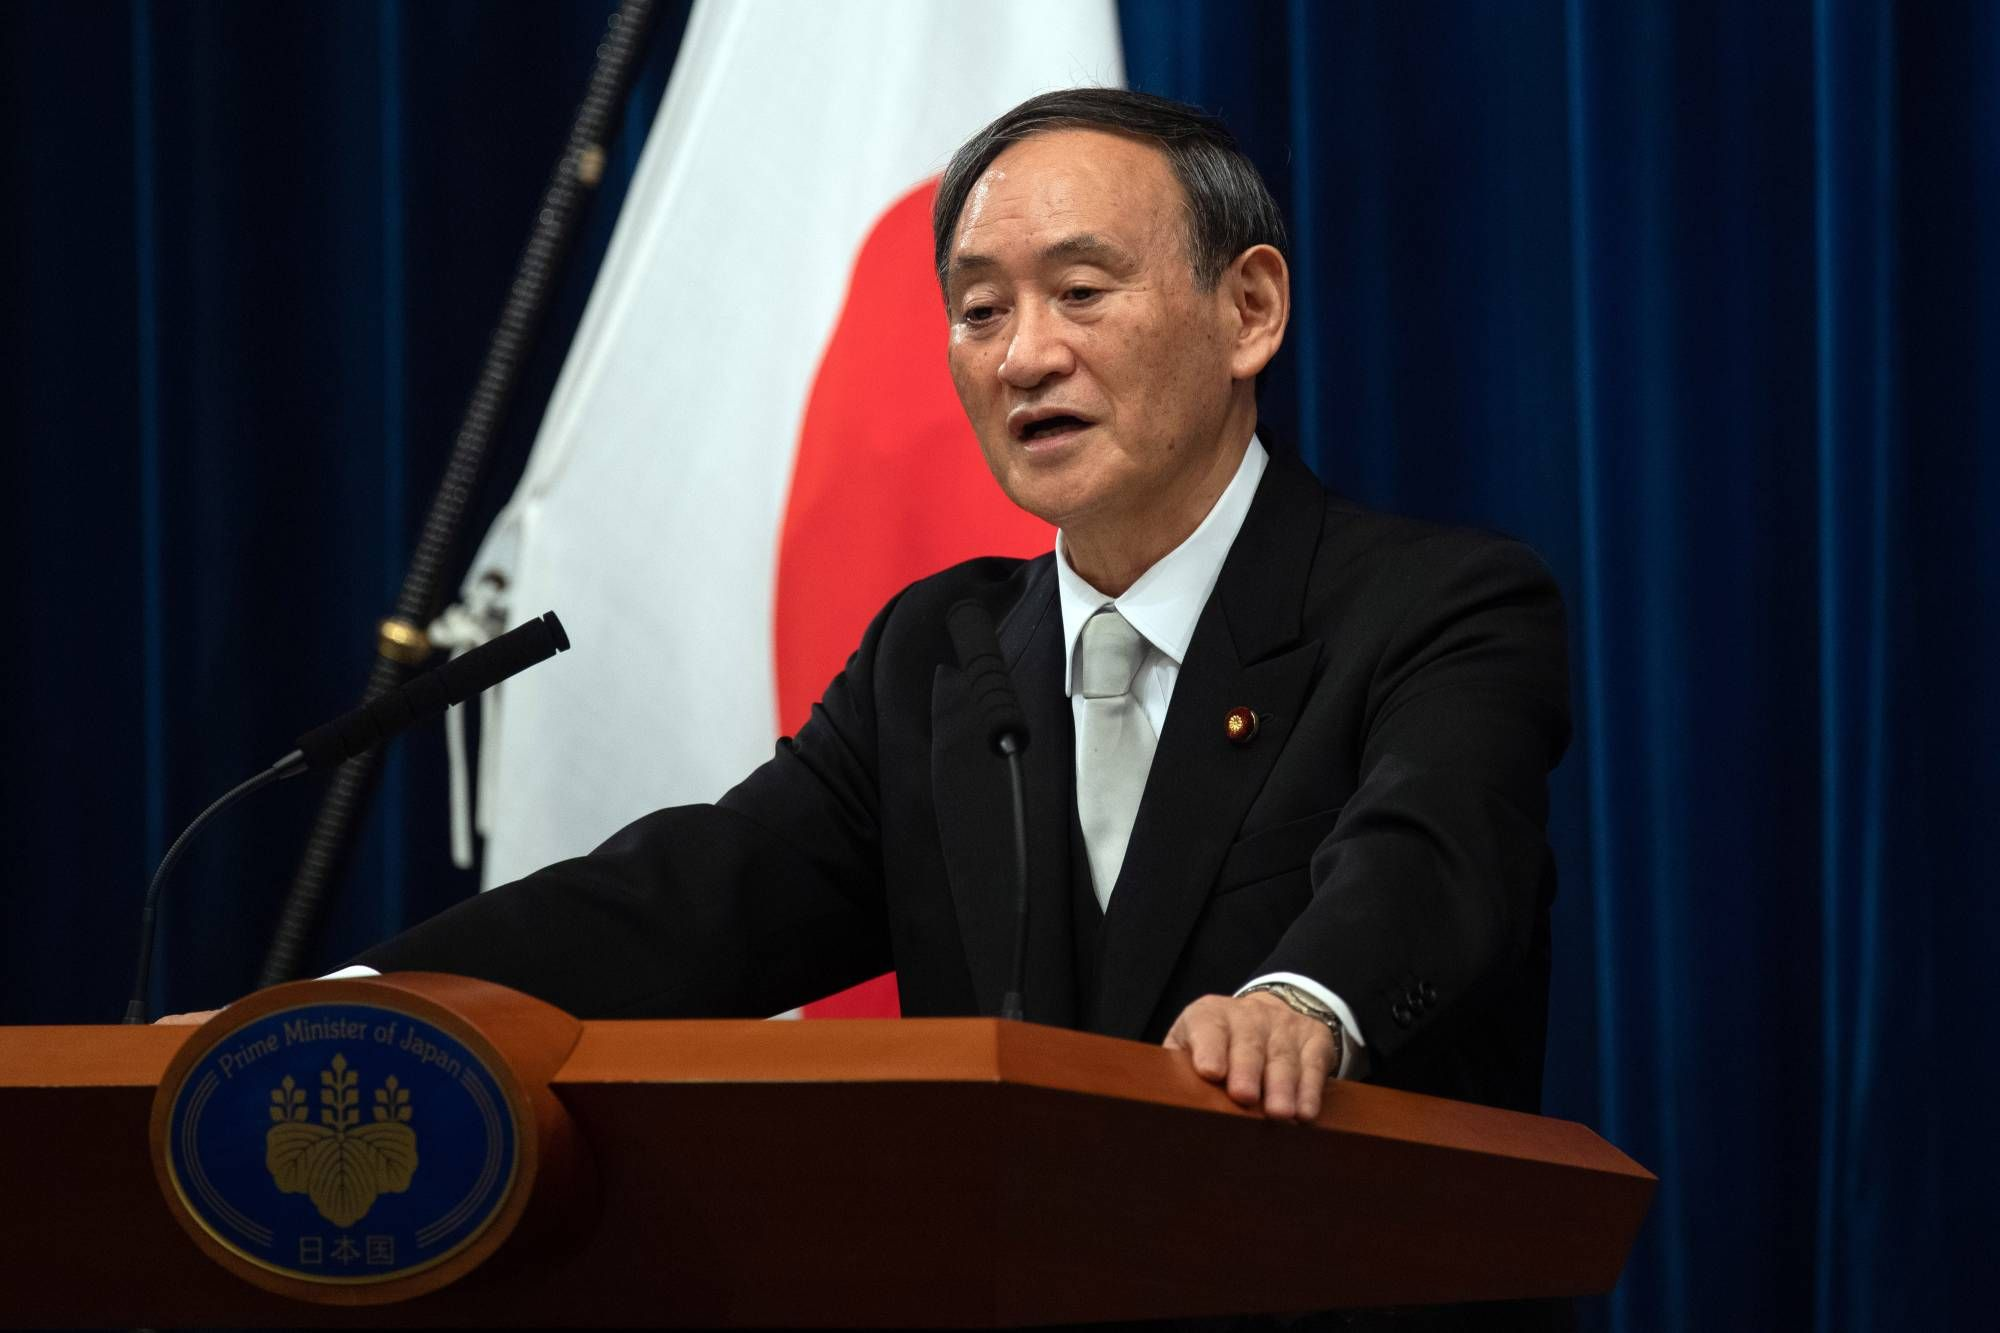 Japan to sign agreement allowing arms exports to Vietnam, report says